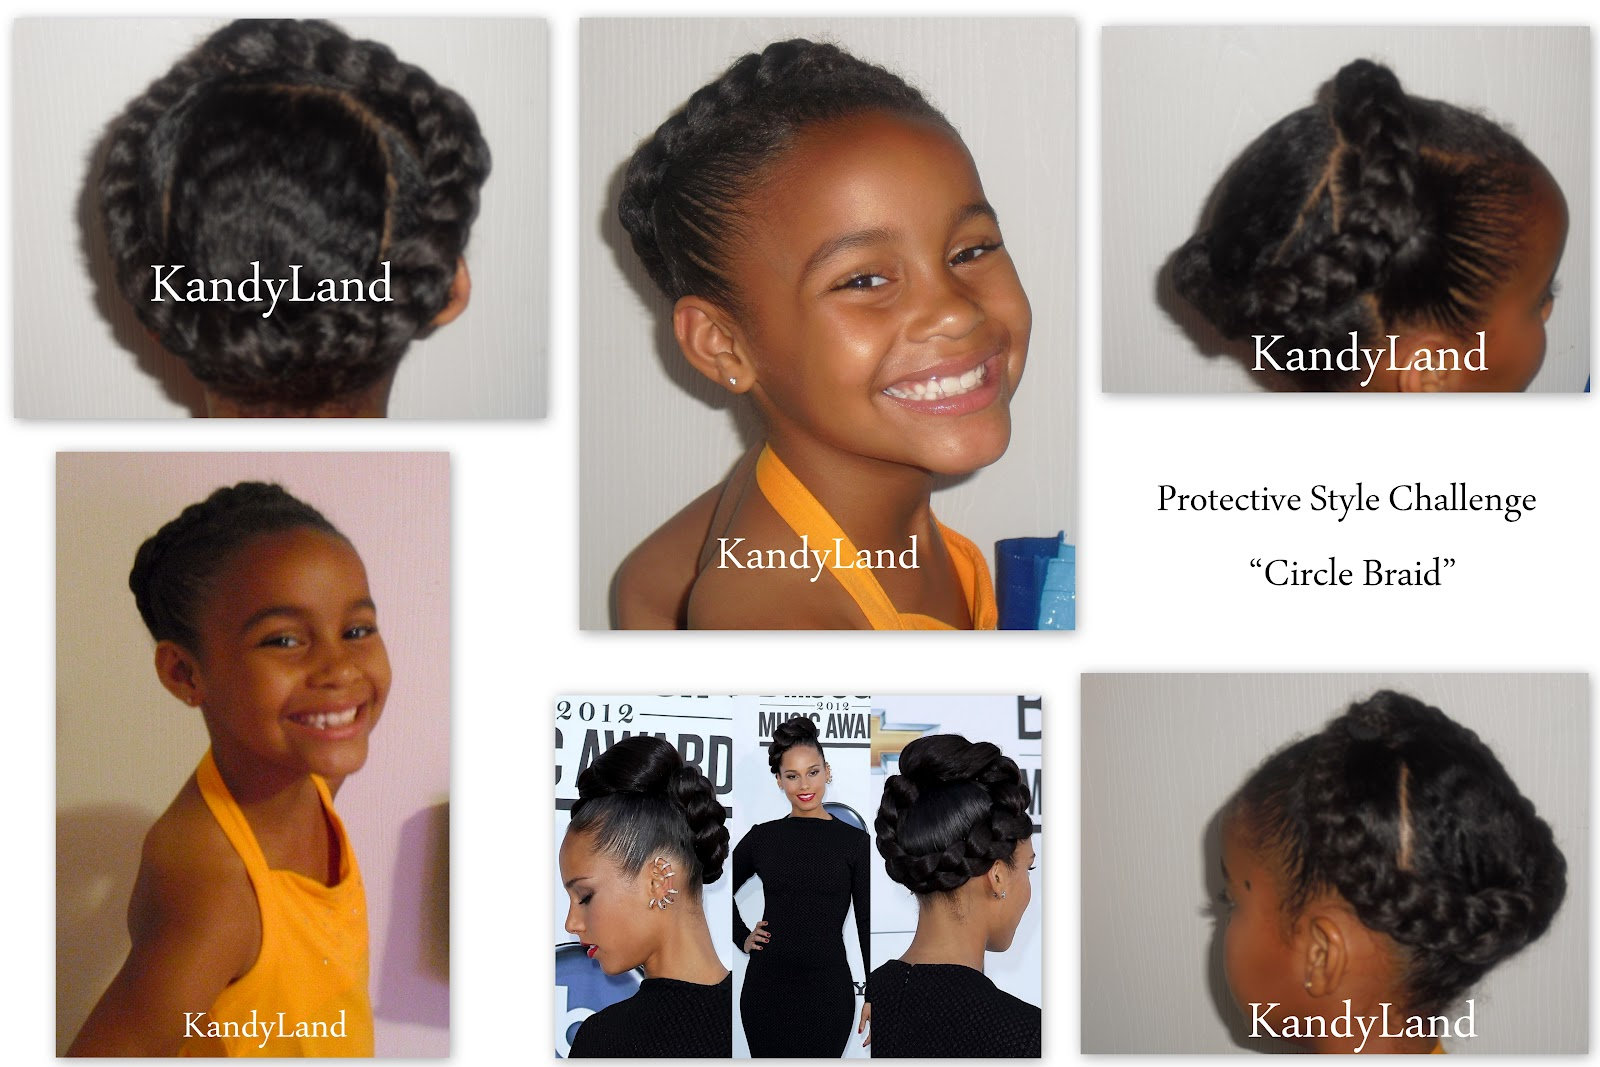 Kandyland celebrity look a like style circle braid celebrity look a like style circle braid ccuart Gallery